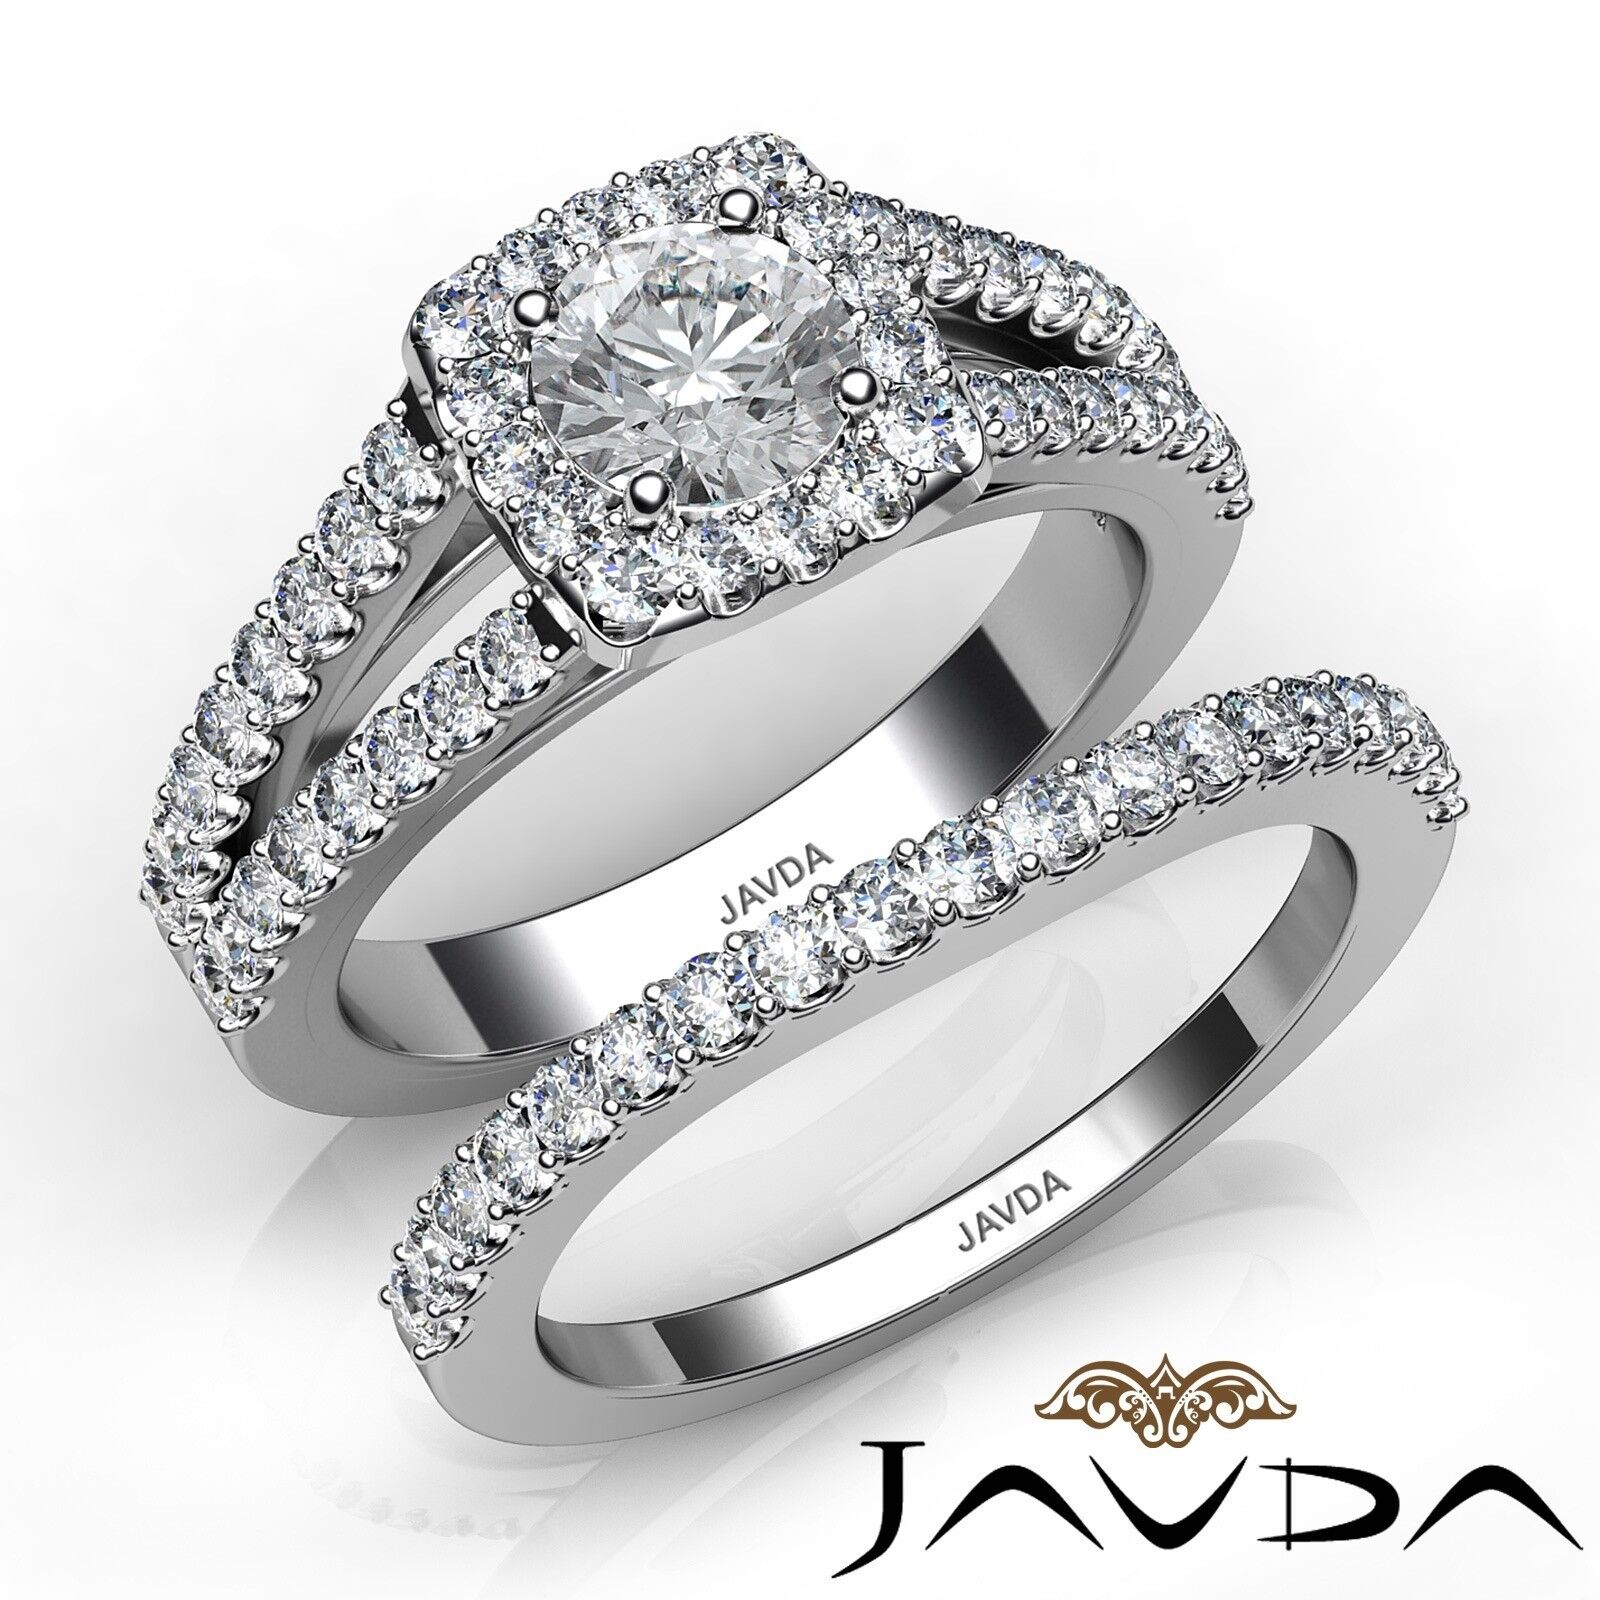 1.75ctw Charming Halo Bridal Set Round Diamond Engagement Ring GIA H-VS2 W Gold